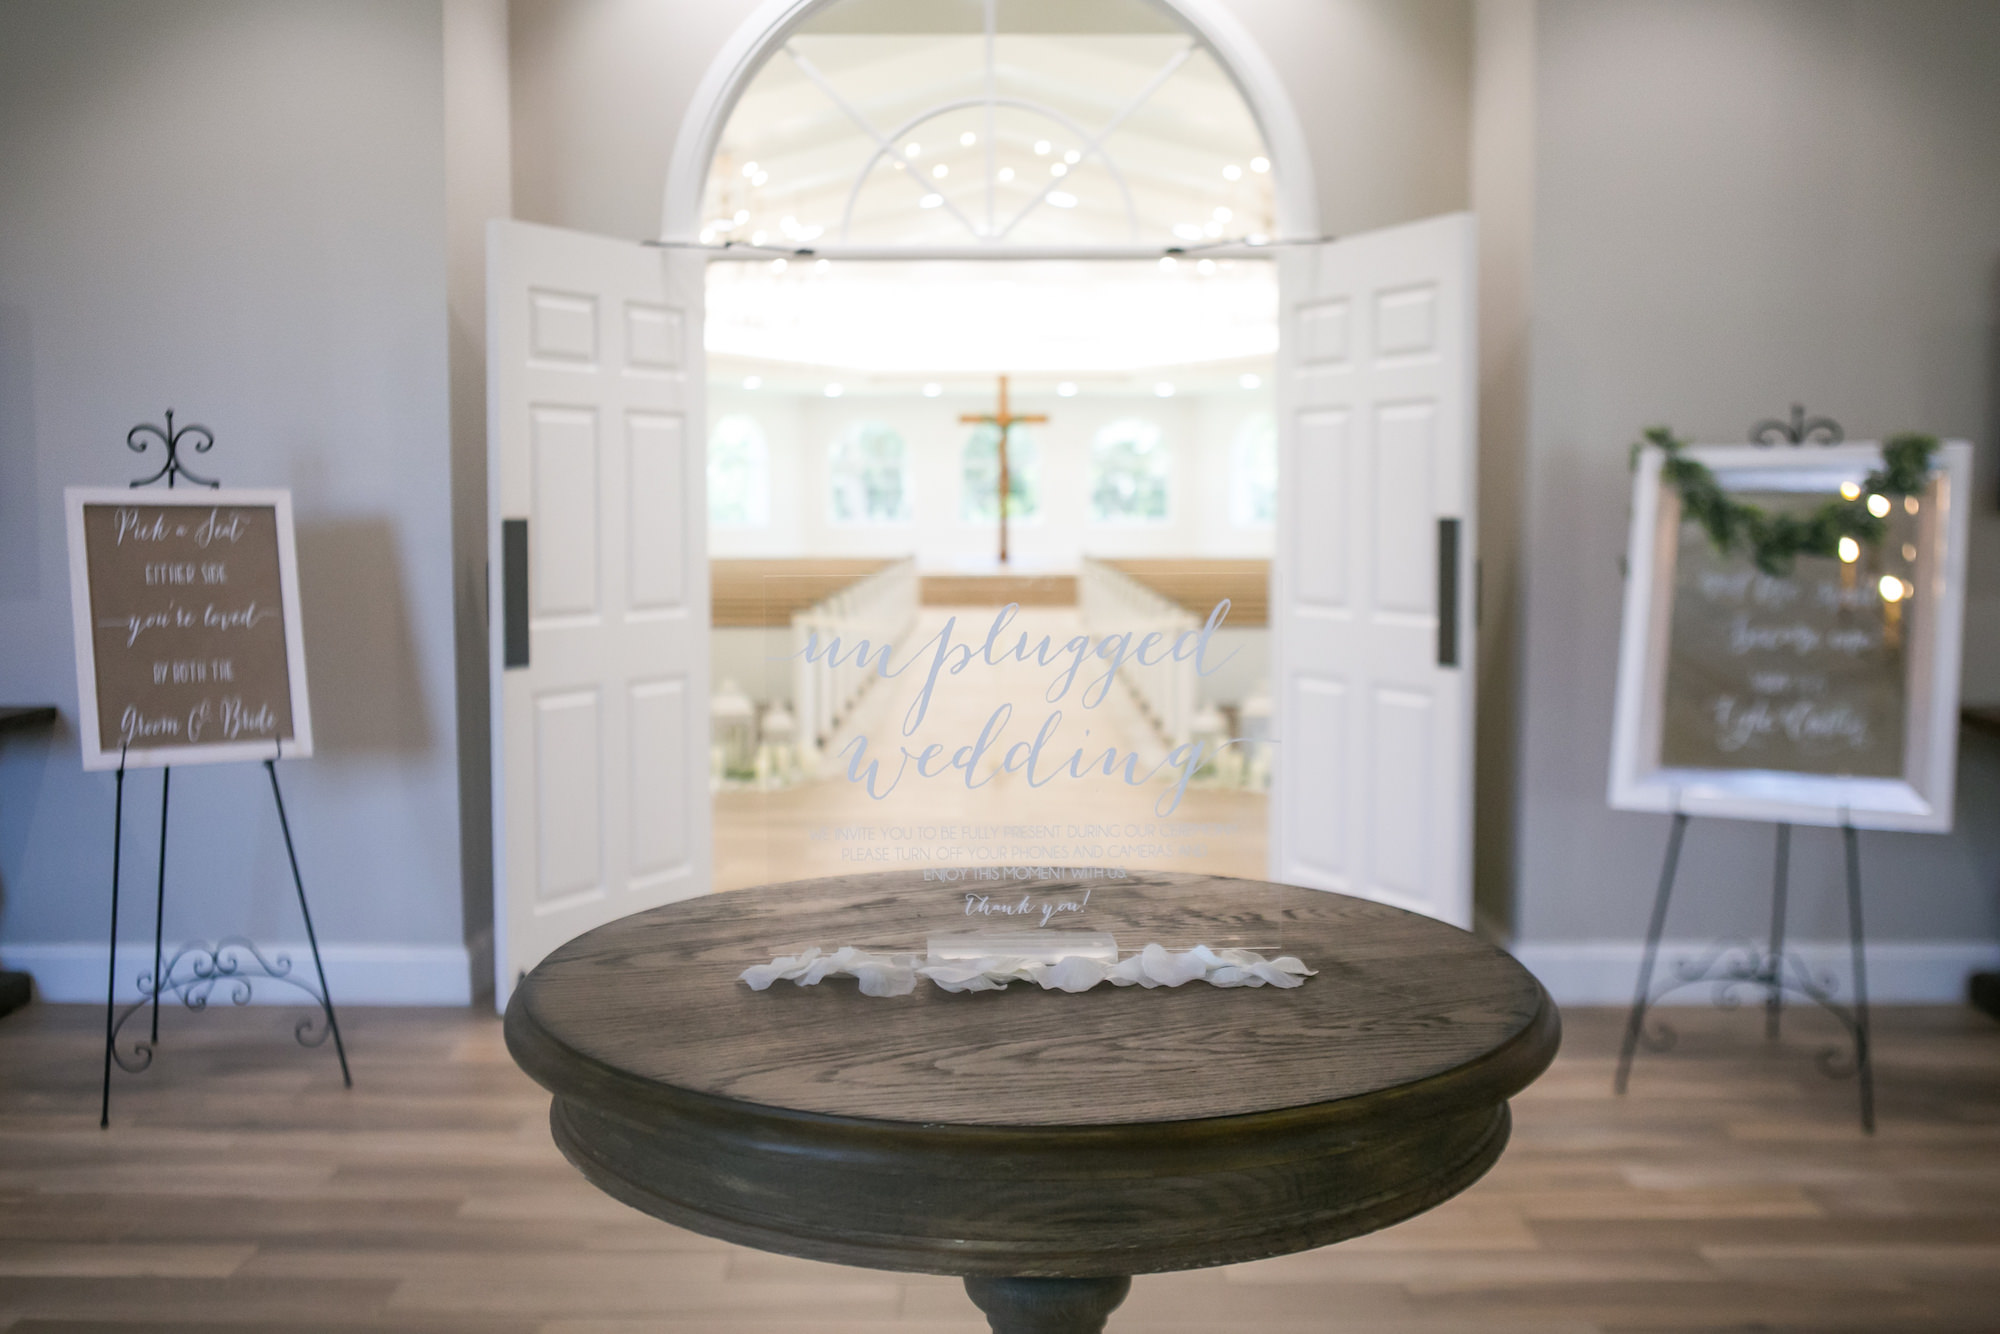 Elegant Modern Acrylic Sign with White Script Unplugged Wedding Sign   Tampa Bay Wedding Photographer Carrie Wildes Photography   Safety Harbor Traditional Church Wedding Venue Harborside Chapel